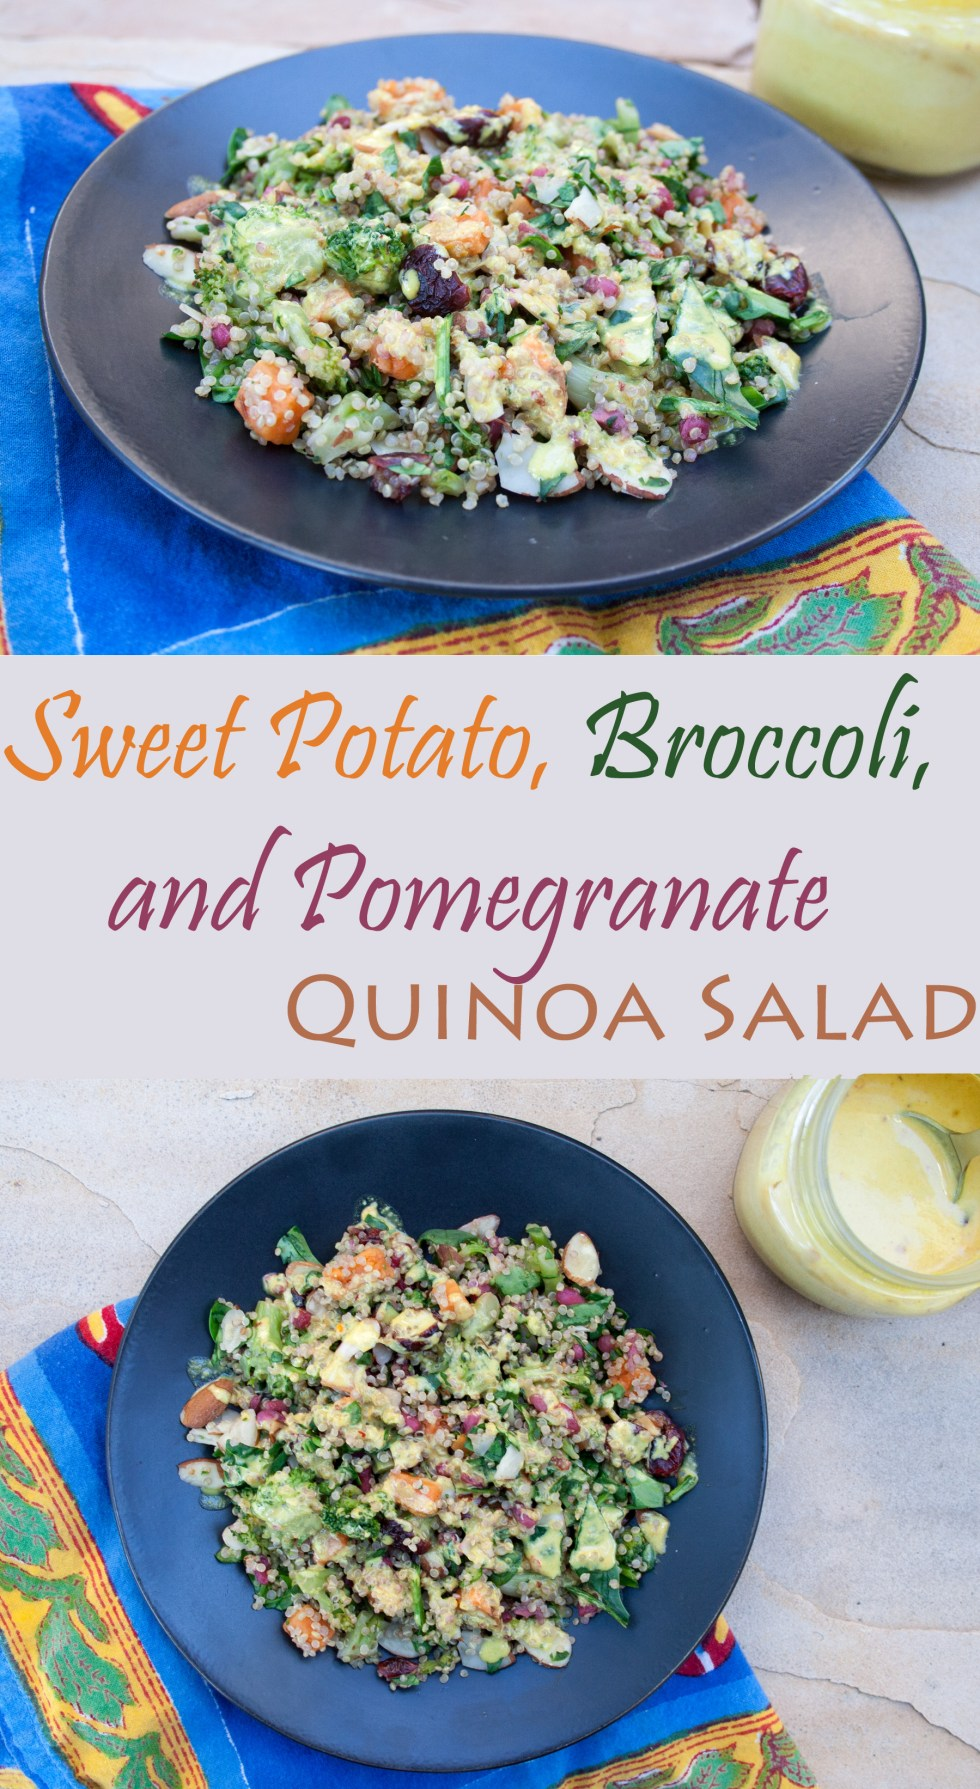 Sweet Potato, Broccoli, and Pomegranate Quinoa Salad - This sweet and savory vegan gluten free salad is perfect for a potluck or party because it can be served at room temperature.